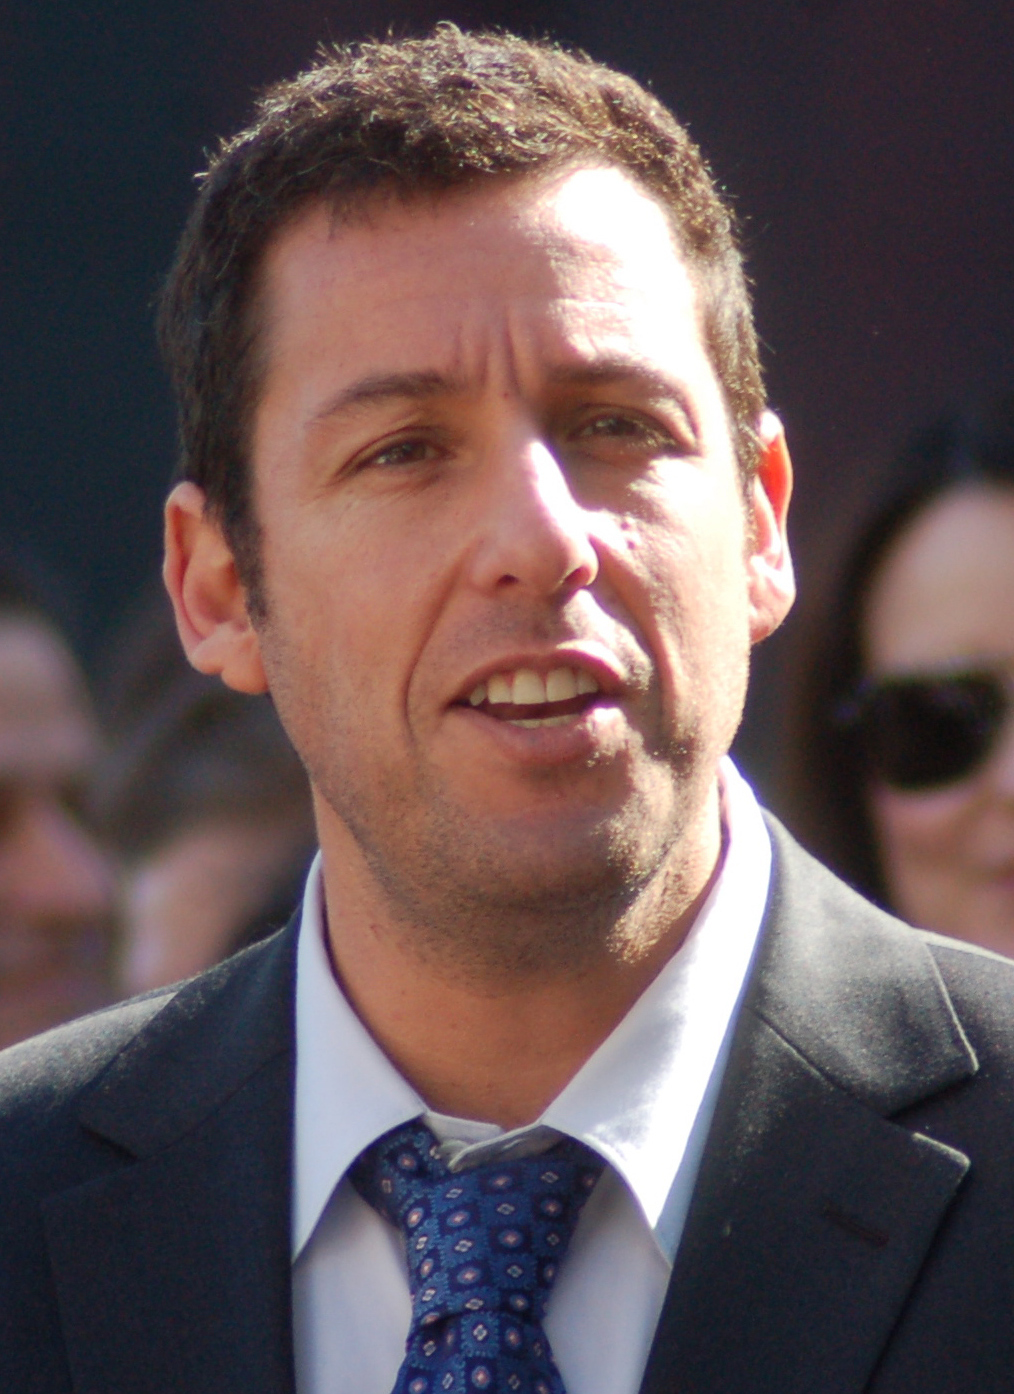 Adam Sandler shines in Uncut Gems in what may be his best career performance. Photo from Wikimedia Commons.